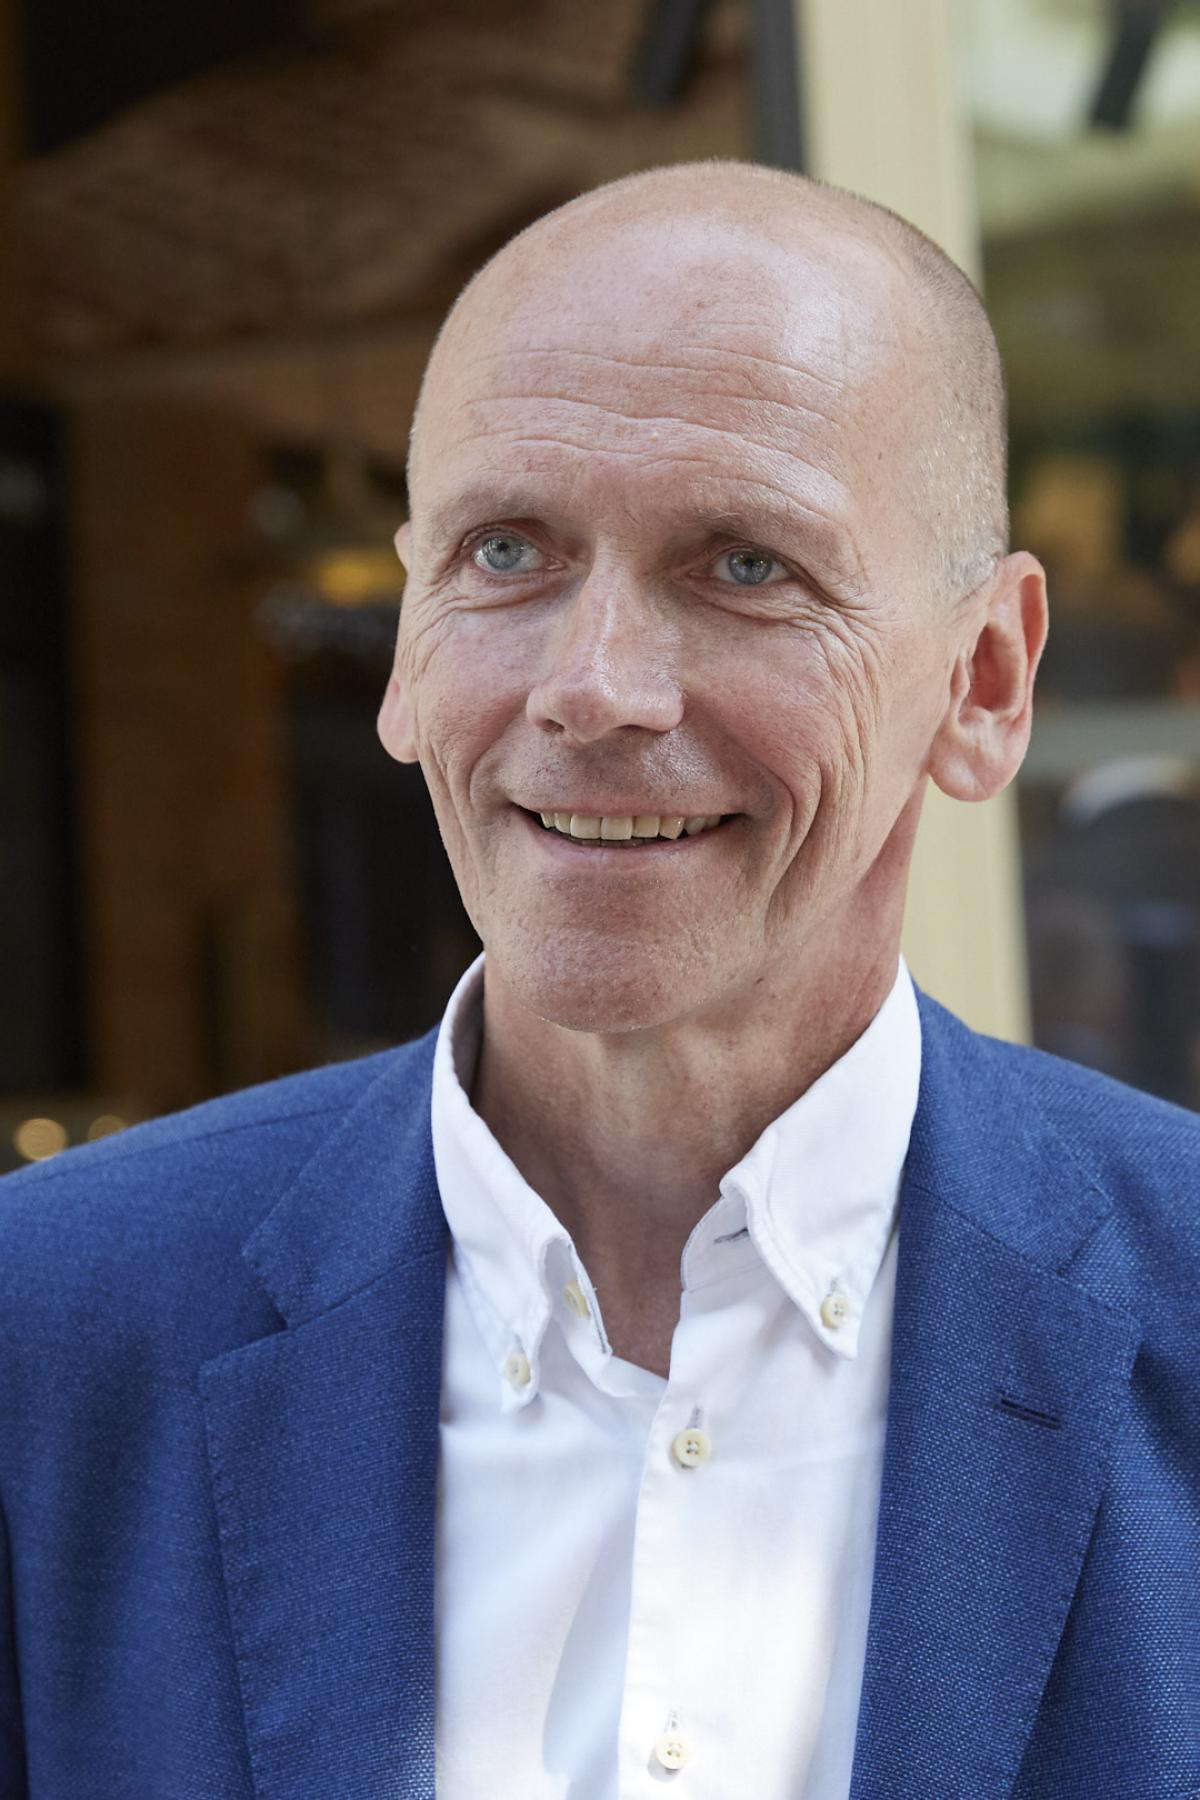 Ignace Van Doorselaere, CEO de Neuhaus